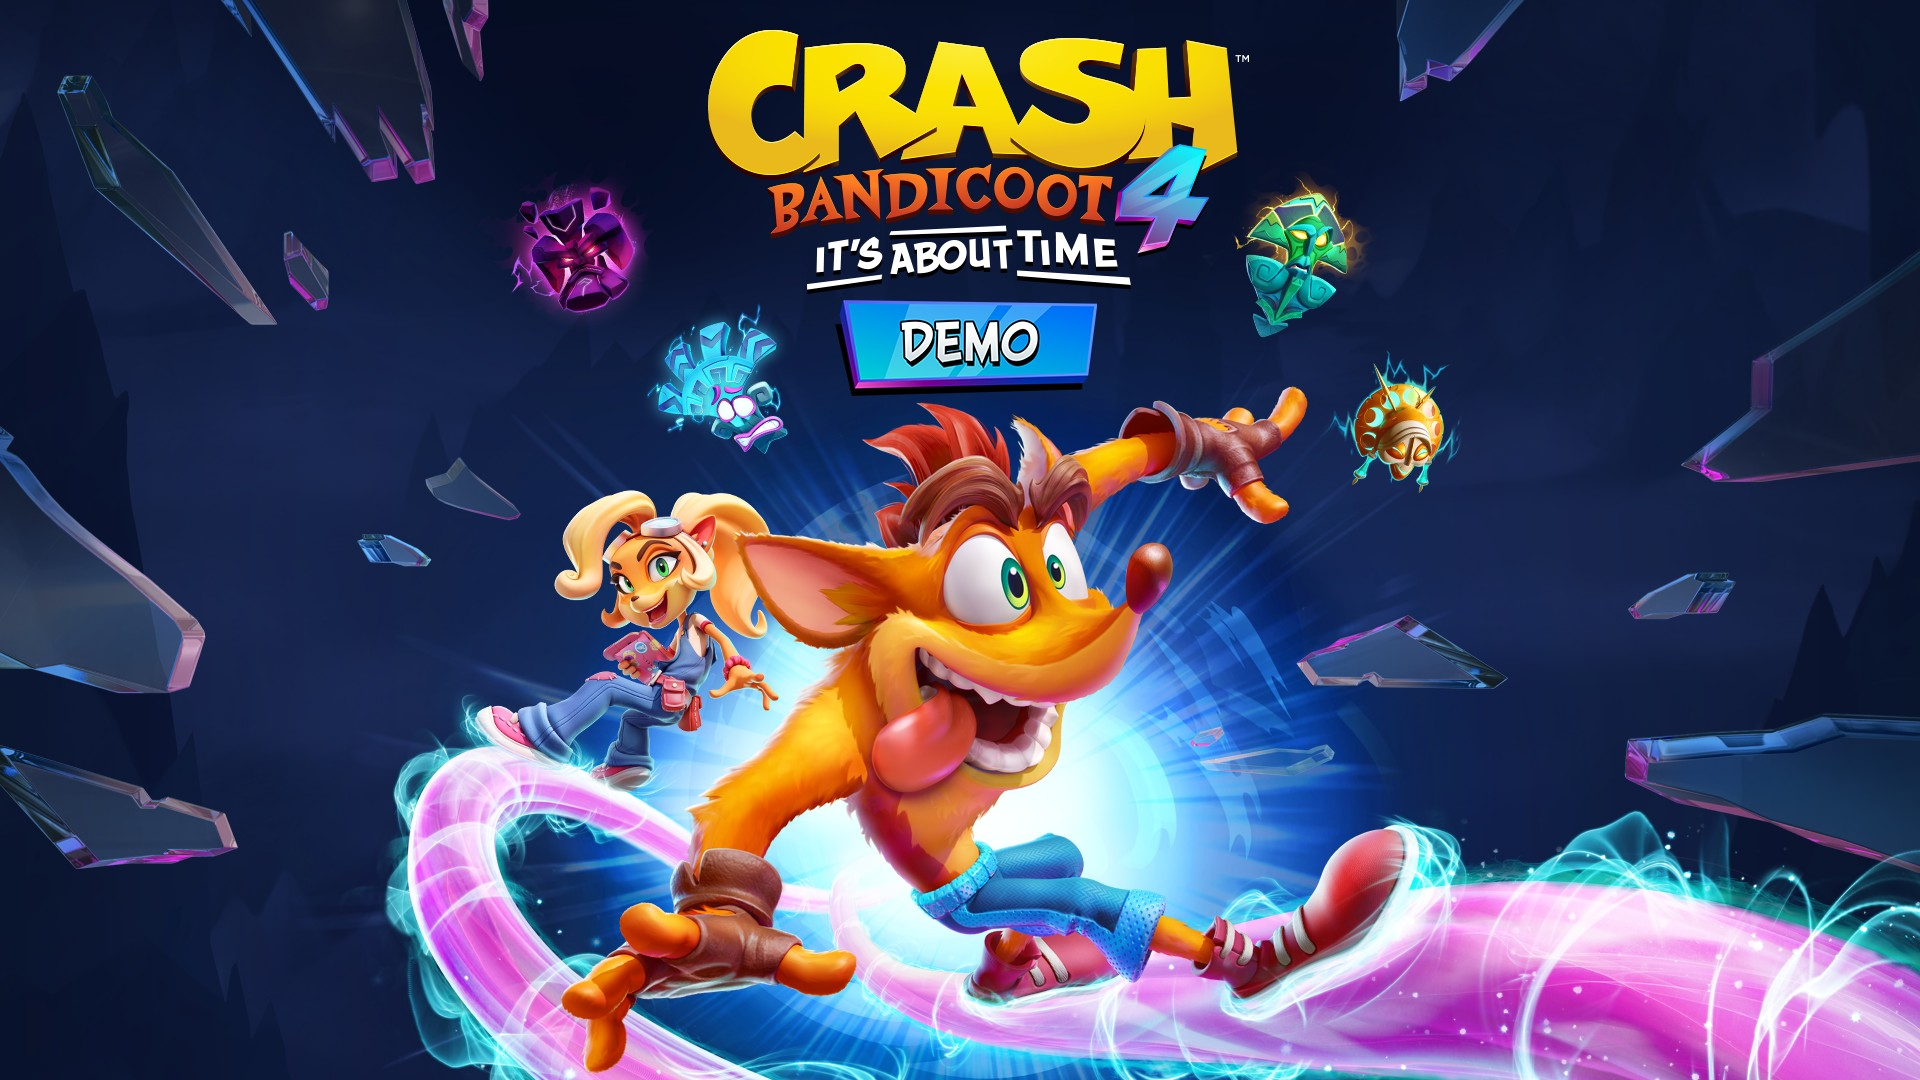 Video For Crash Bandicoot 4: It's About Time – Demo is now live!